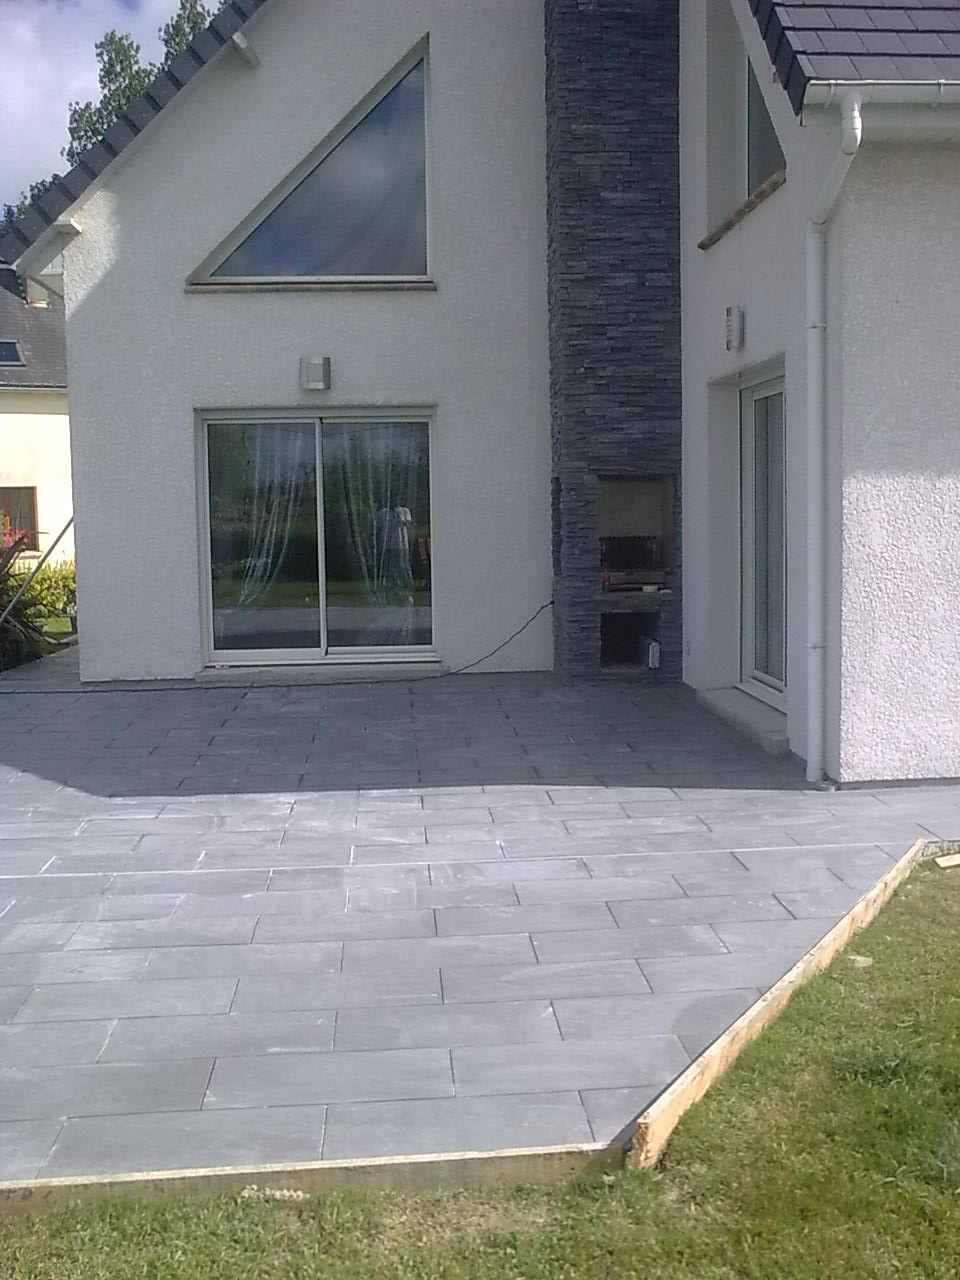 Video refaire joints carrelage devis gratuit travaux for Coller du carrelage au sol